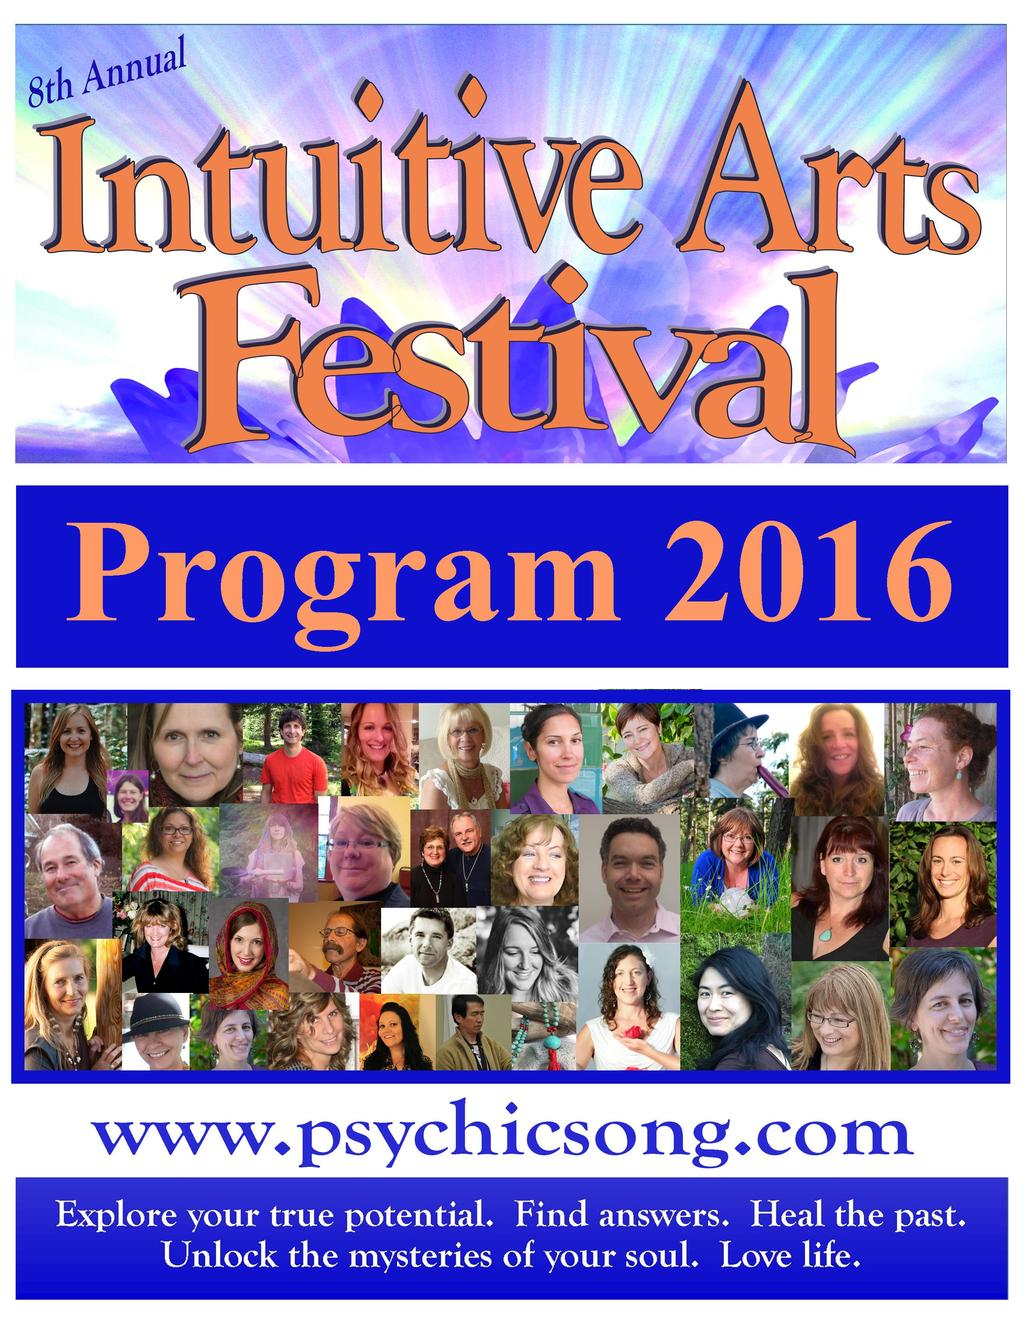 Intuitive Arts Festival 2016 in Victoria